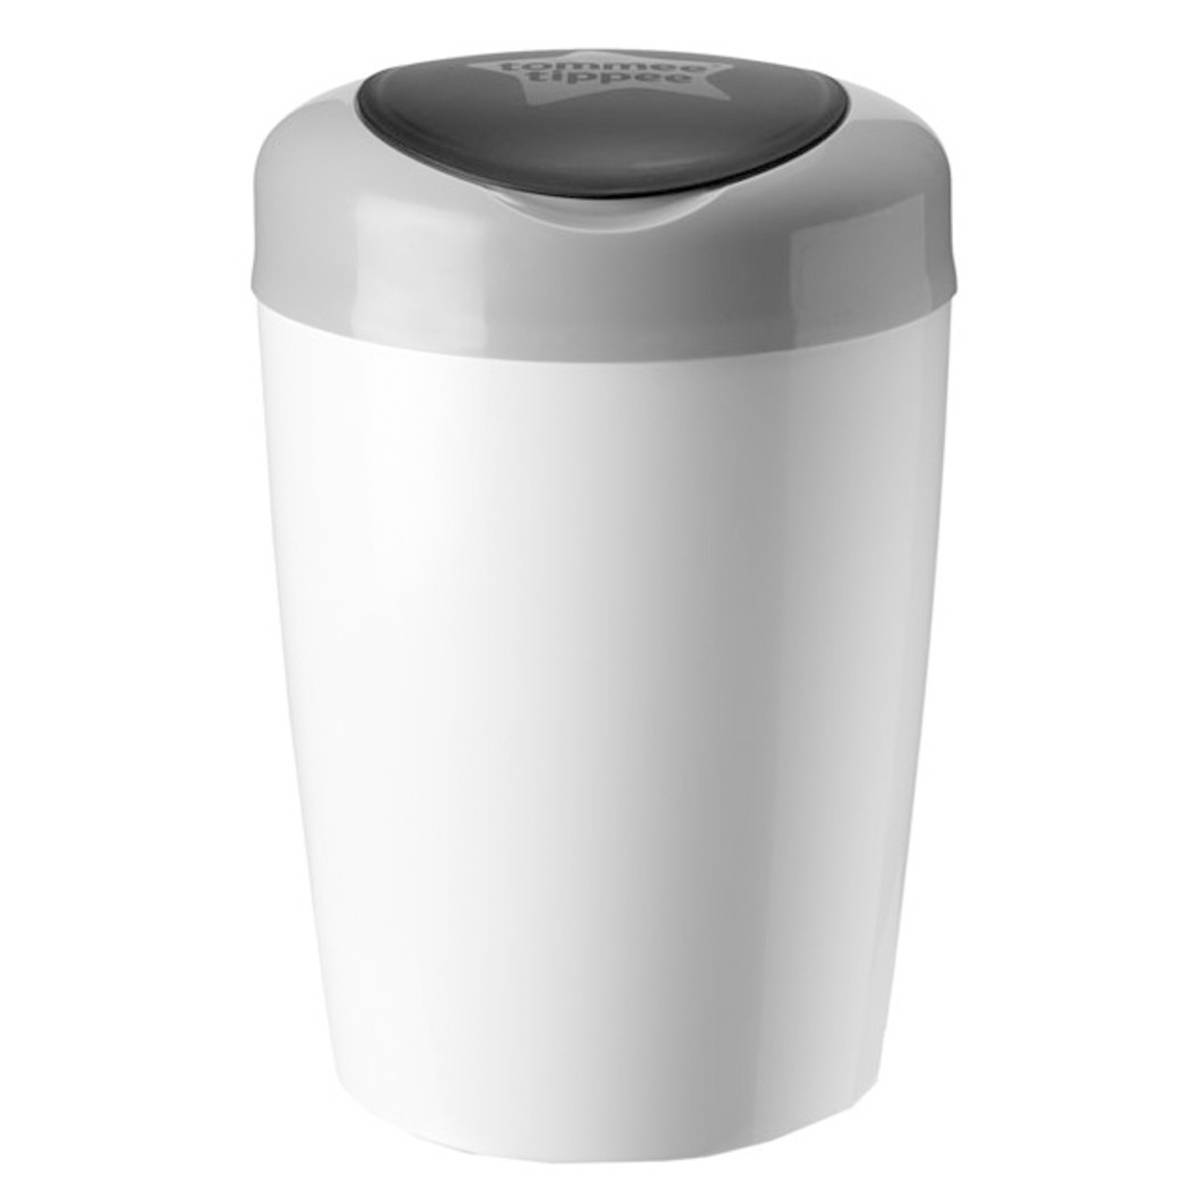 Tommee Tippee Poubelle à Couches Simplee Sangenic - Gris